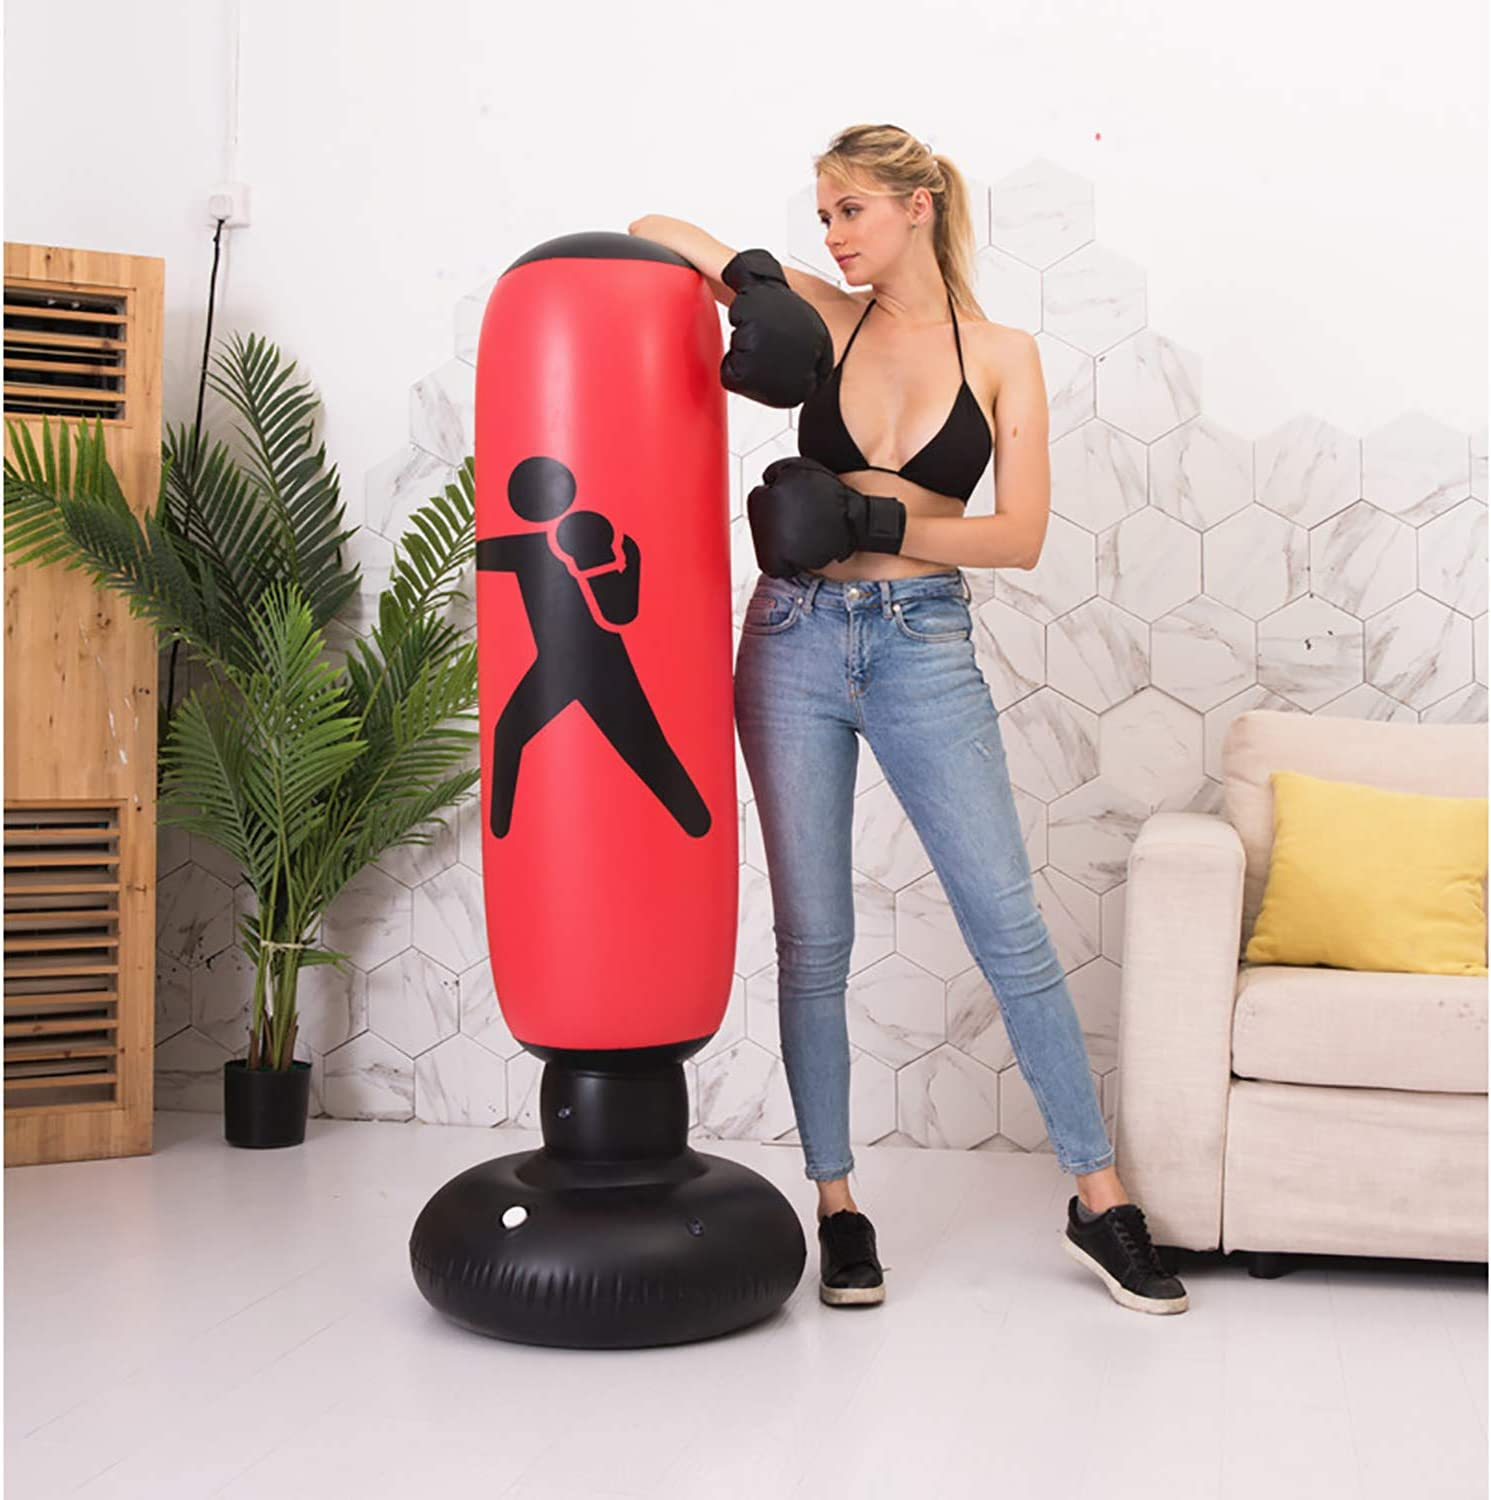 BOOMGROO Inflatable Punching Bag with Stand - Boxing Bag Toy Boxing Stand Heavy Bag Stand Strength Enhancer Boxing Toy for Kids, Youth & Adults Boom Boom Boxing (Red) : Sports & Outdoors